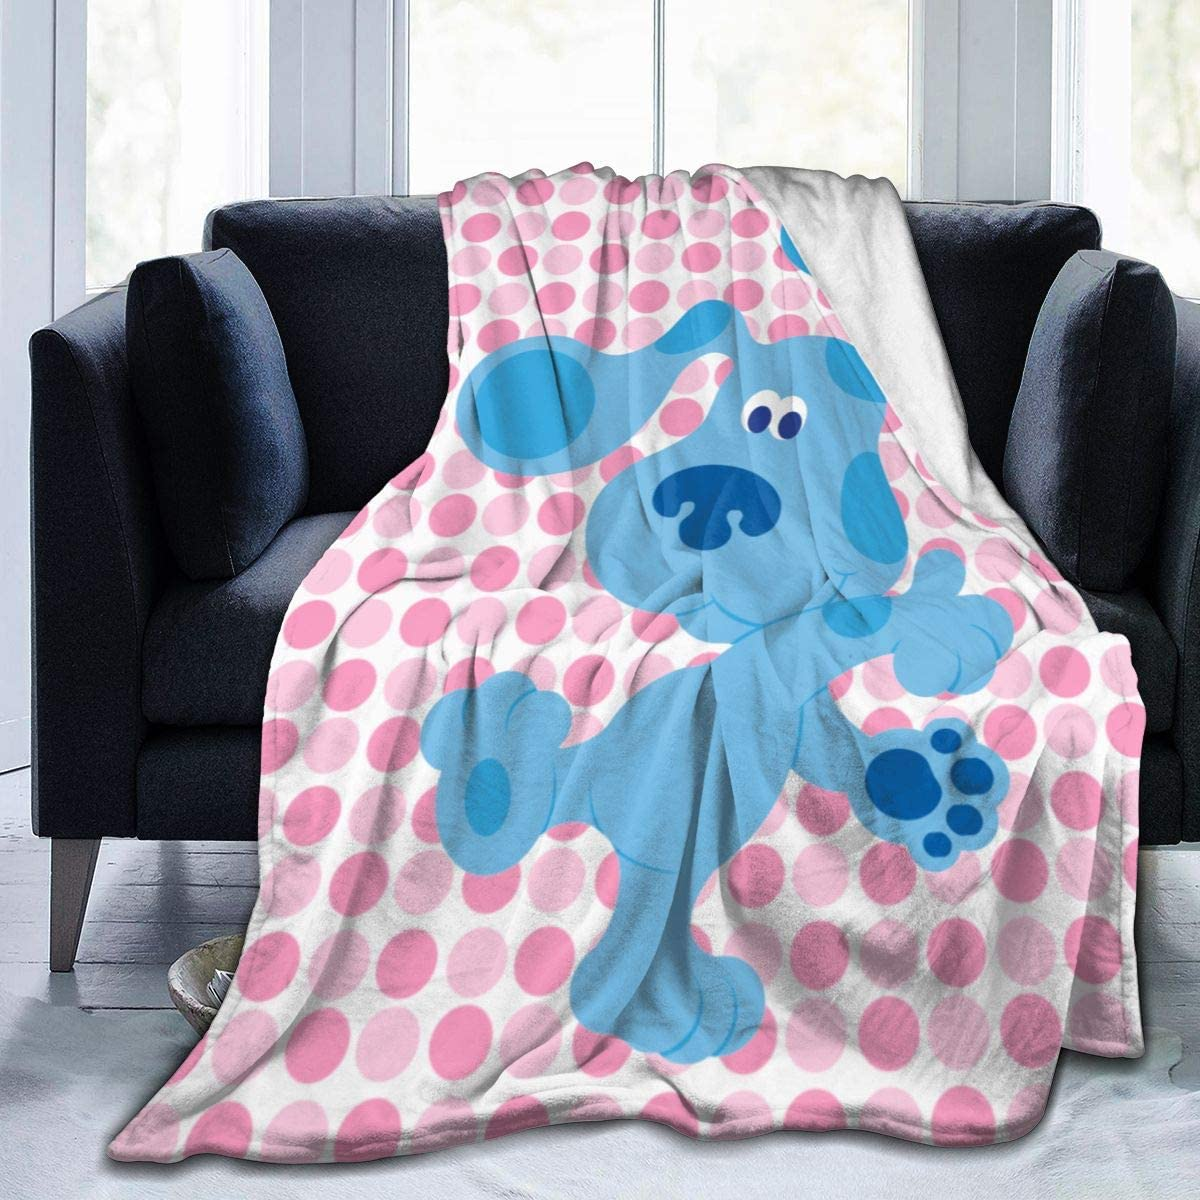 Fleece Flannel Bed Blanket Blue Dog Dancing Microfiber Air Conditioning Quilt Sofa Couch Car Chair Living Room Bedroom Quilt 50X40Blanket for Kids